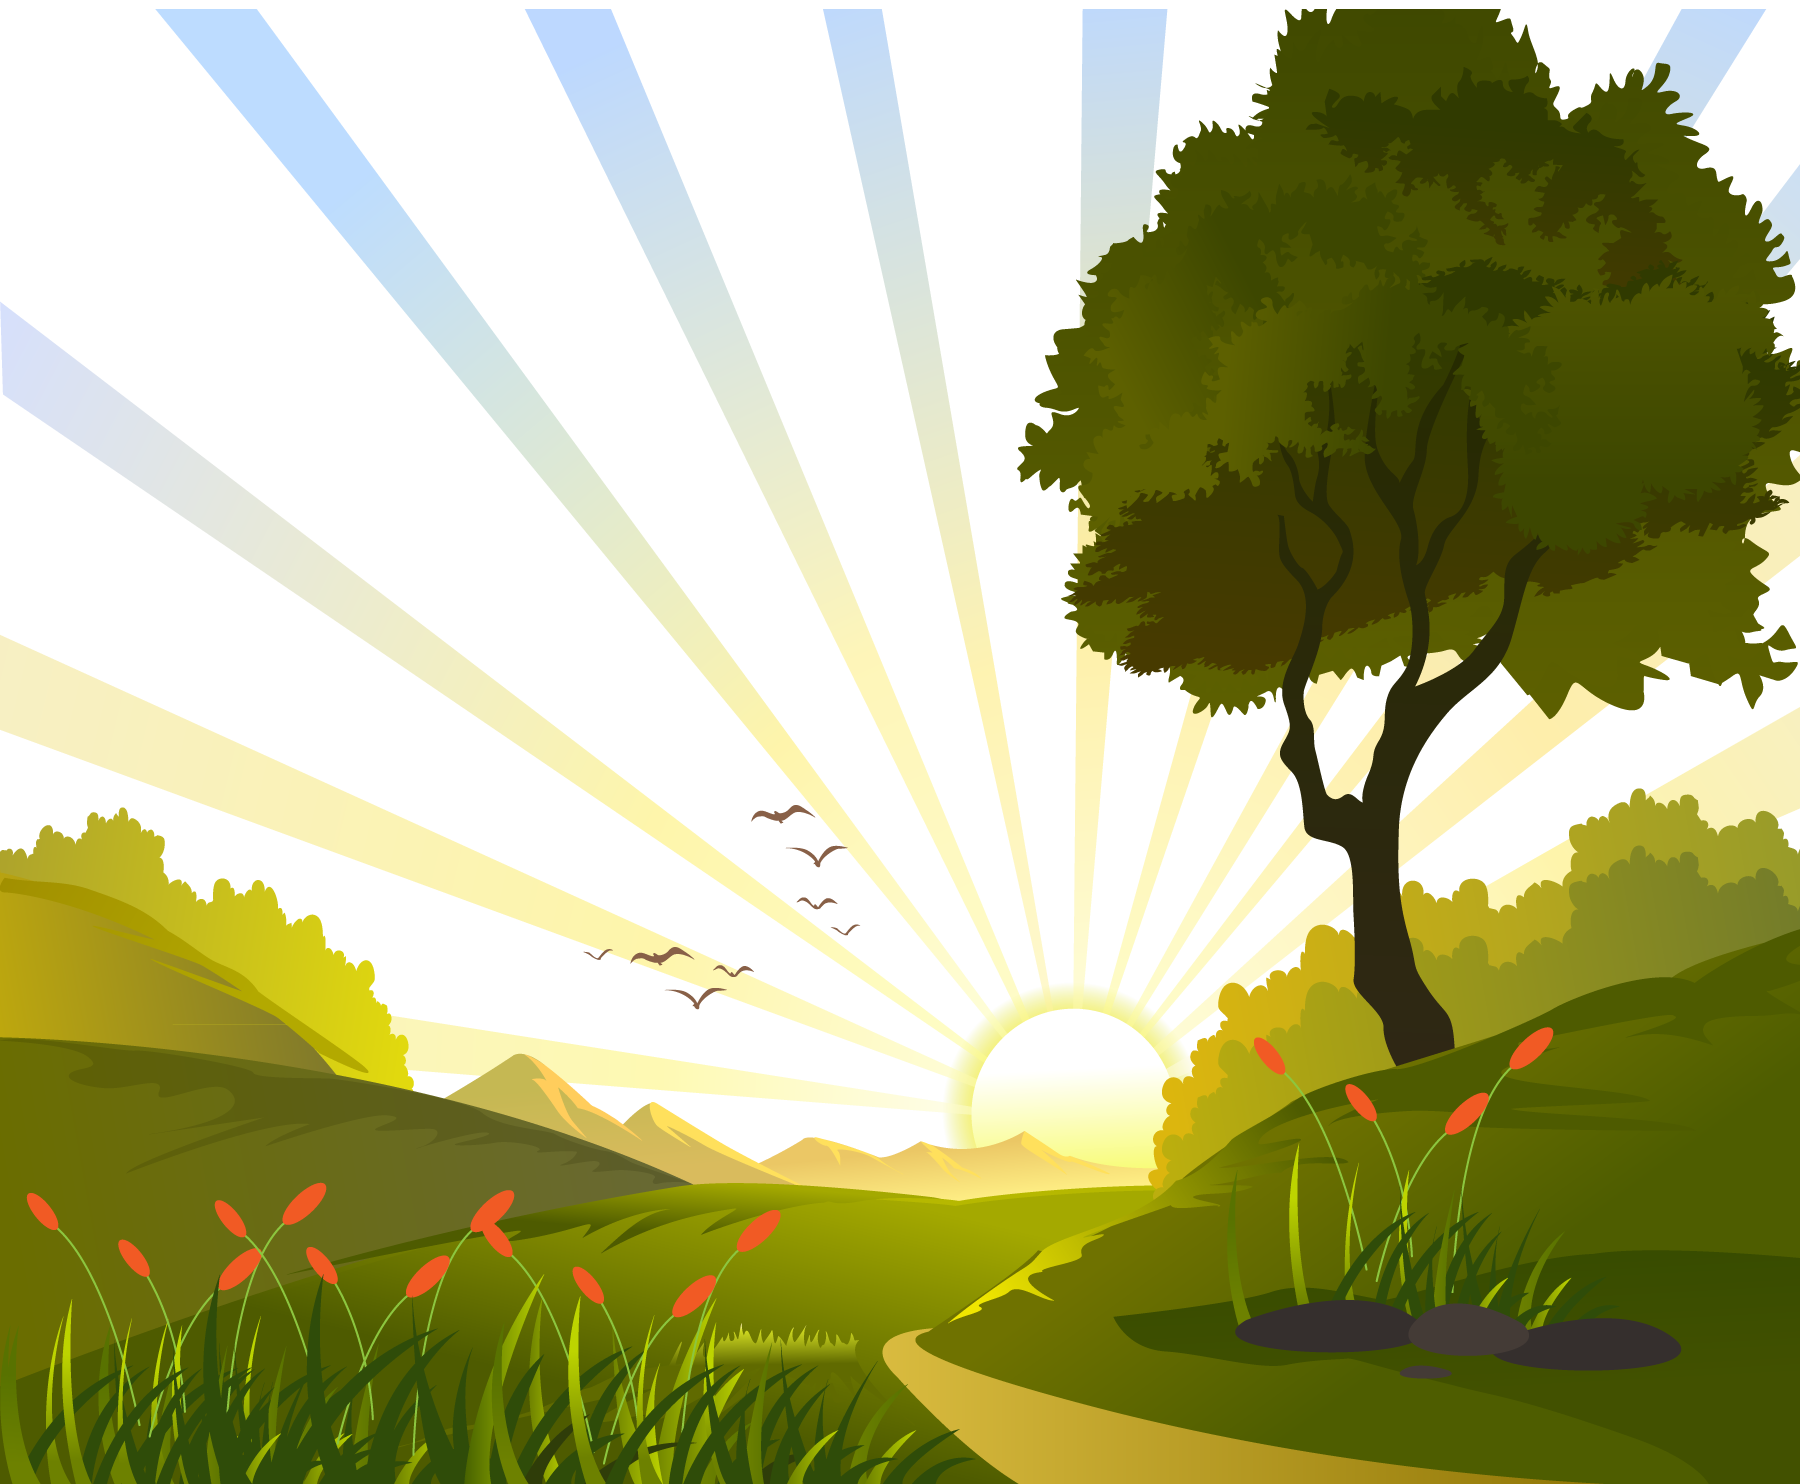 Tree sun grass landscape clipart png royalty free download Euclidean vector Clip art - Sunrise in the field vector illustration ... png royalty free download